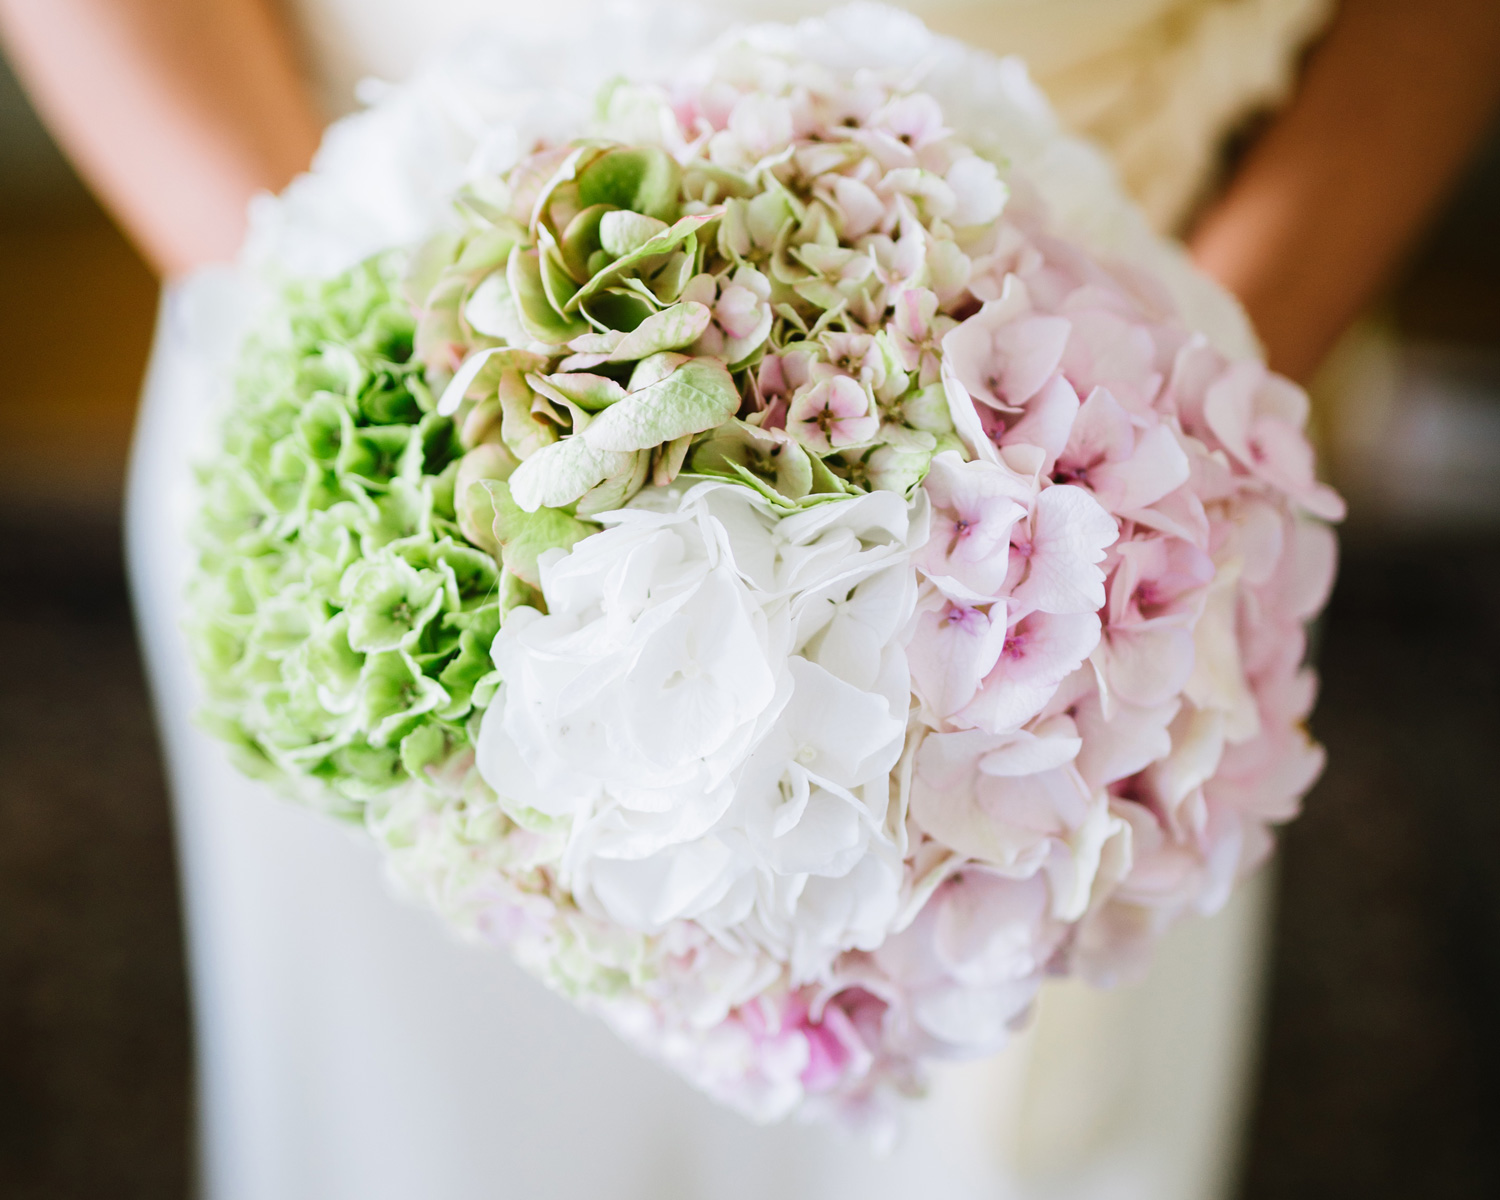 Bouquet Sposa Ortensie.Ma Real Wedding Planner Thewhiterose 2 The White Rose